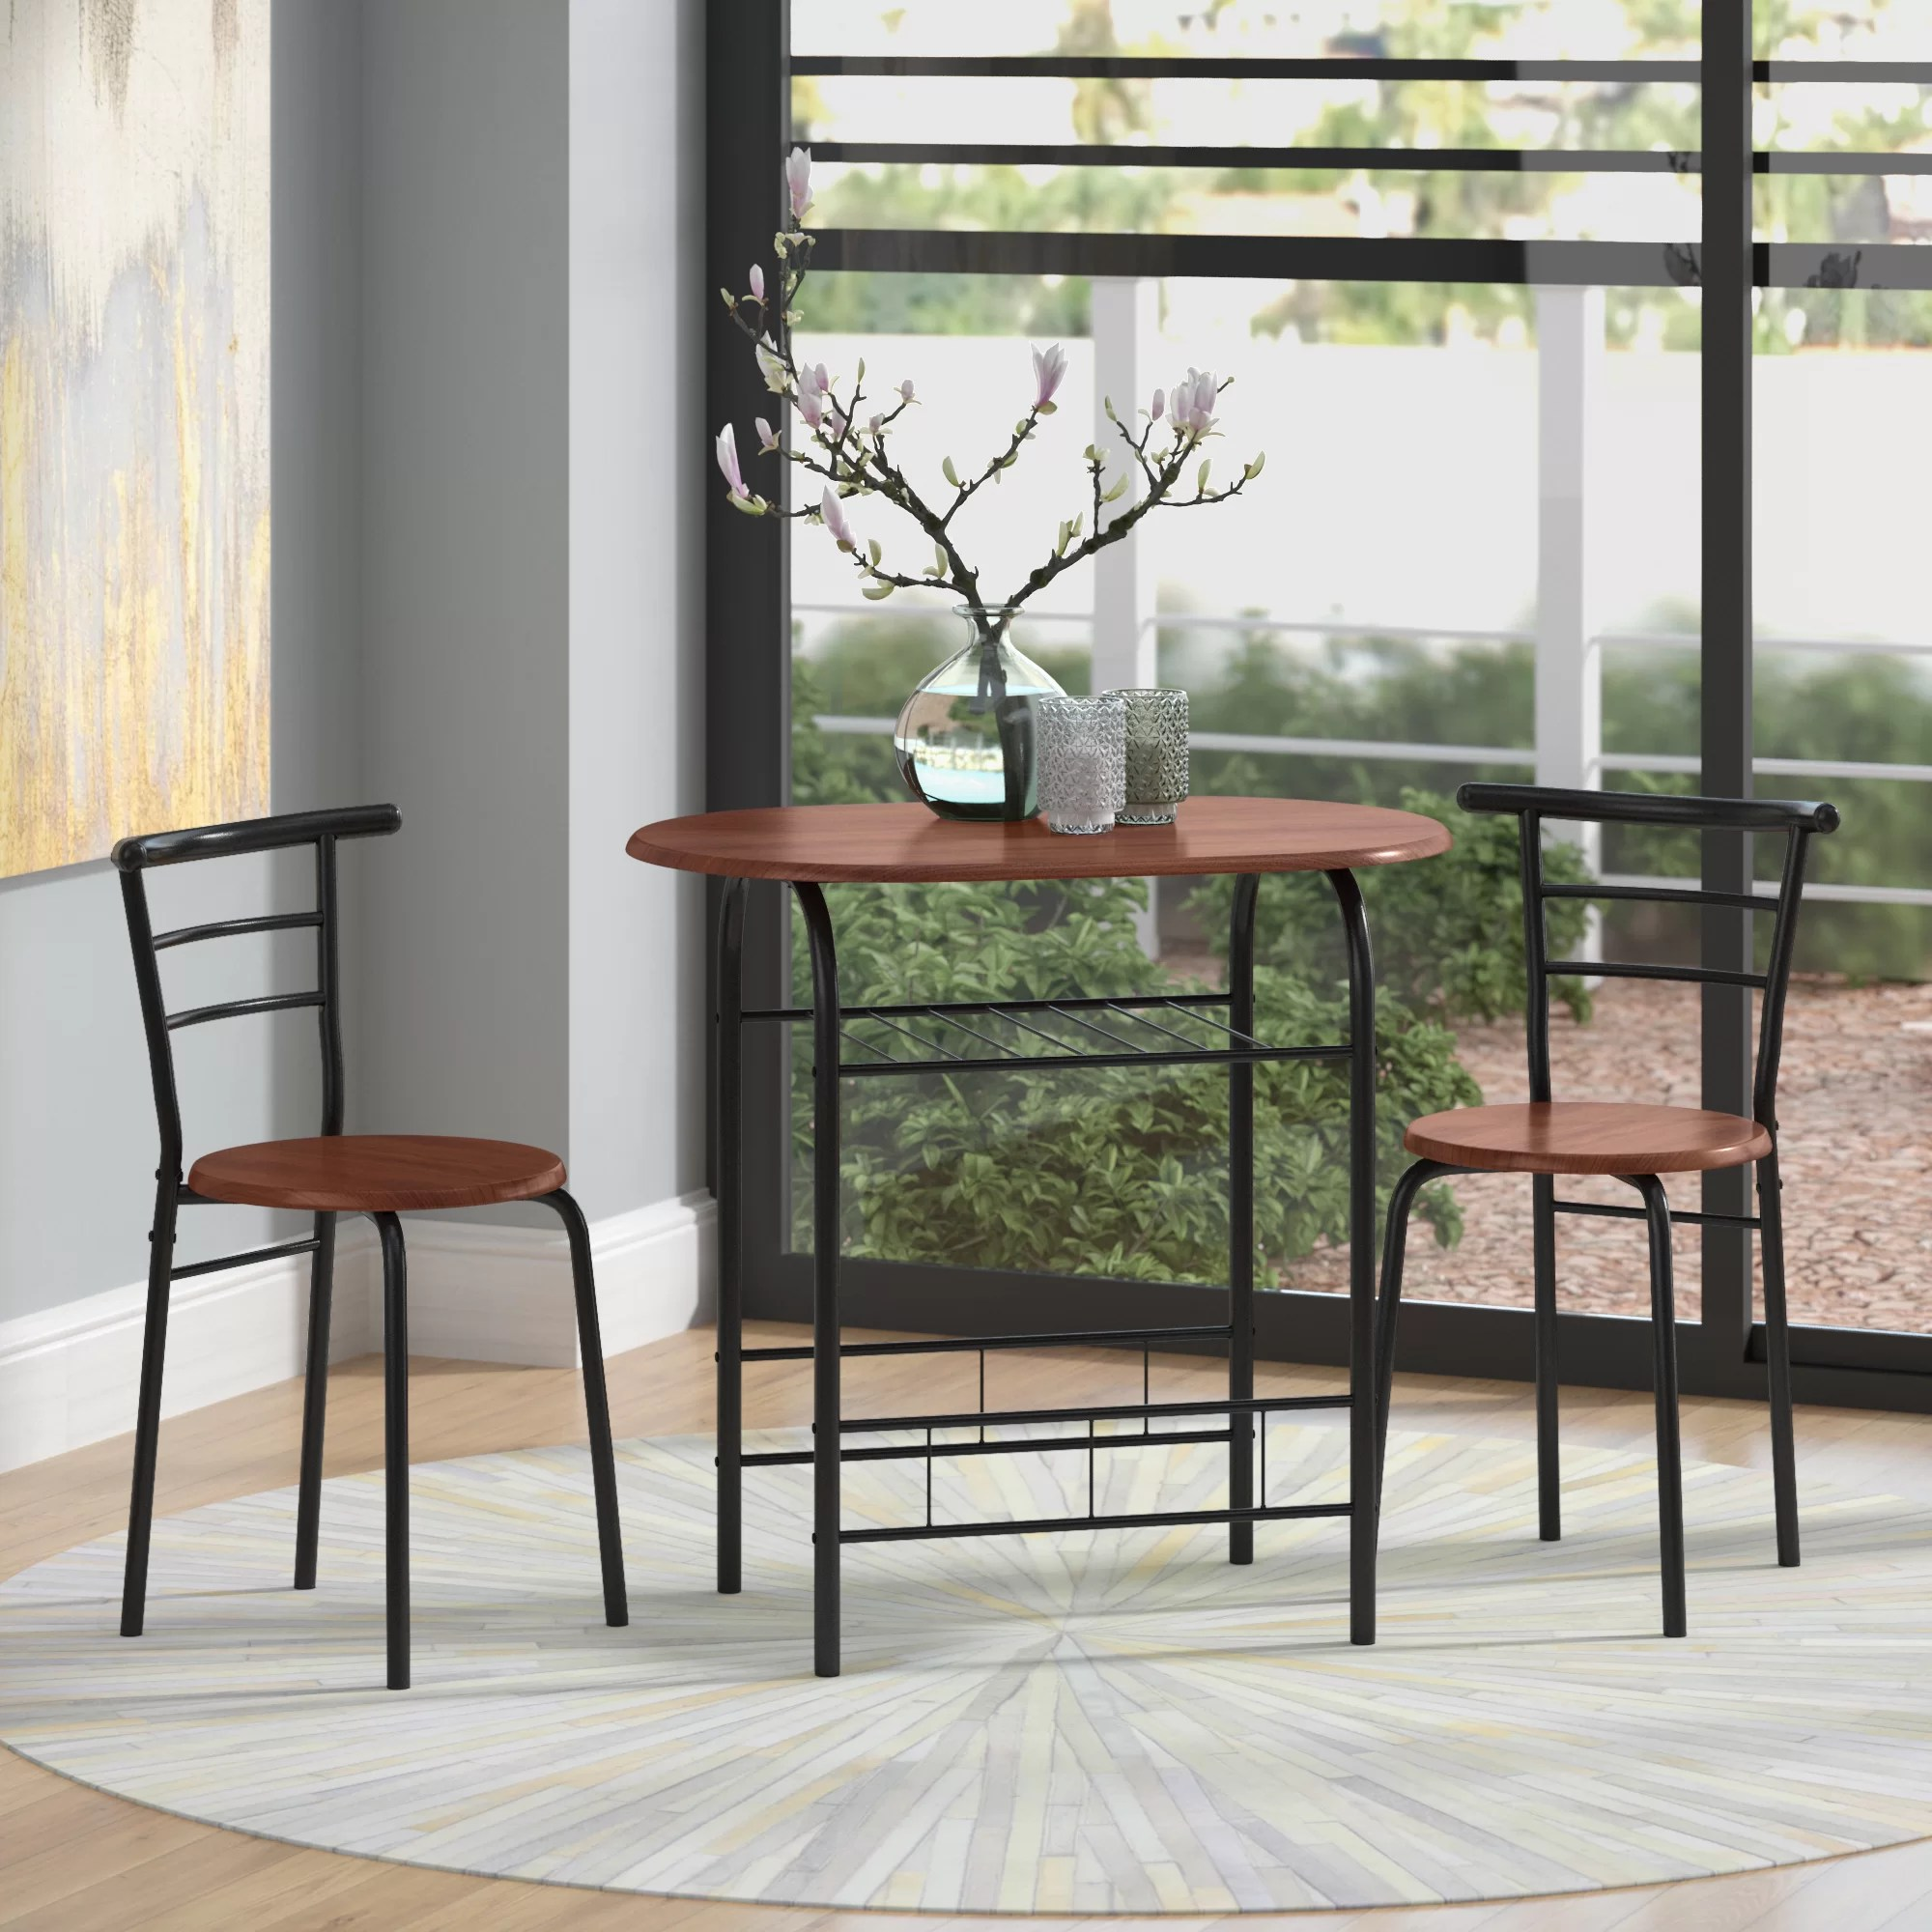 Table With Two Chairs Volmer 3 Piece Compact Dining Set